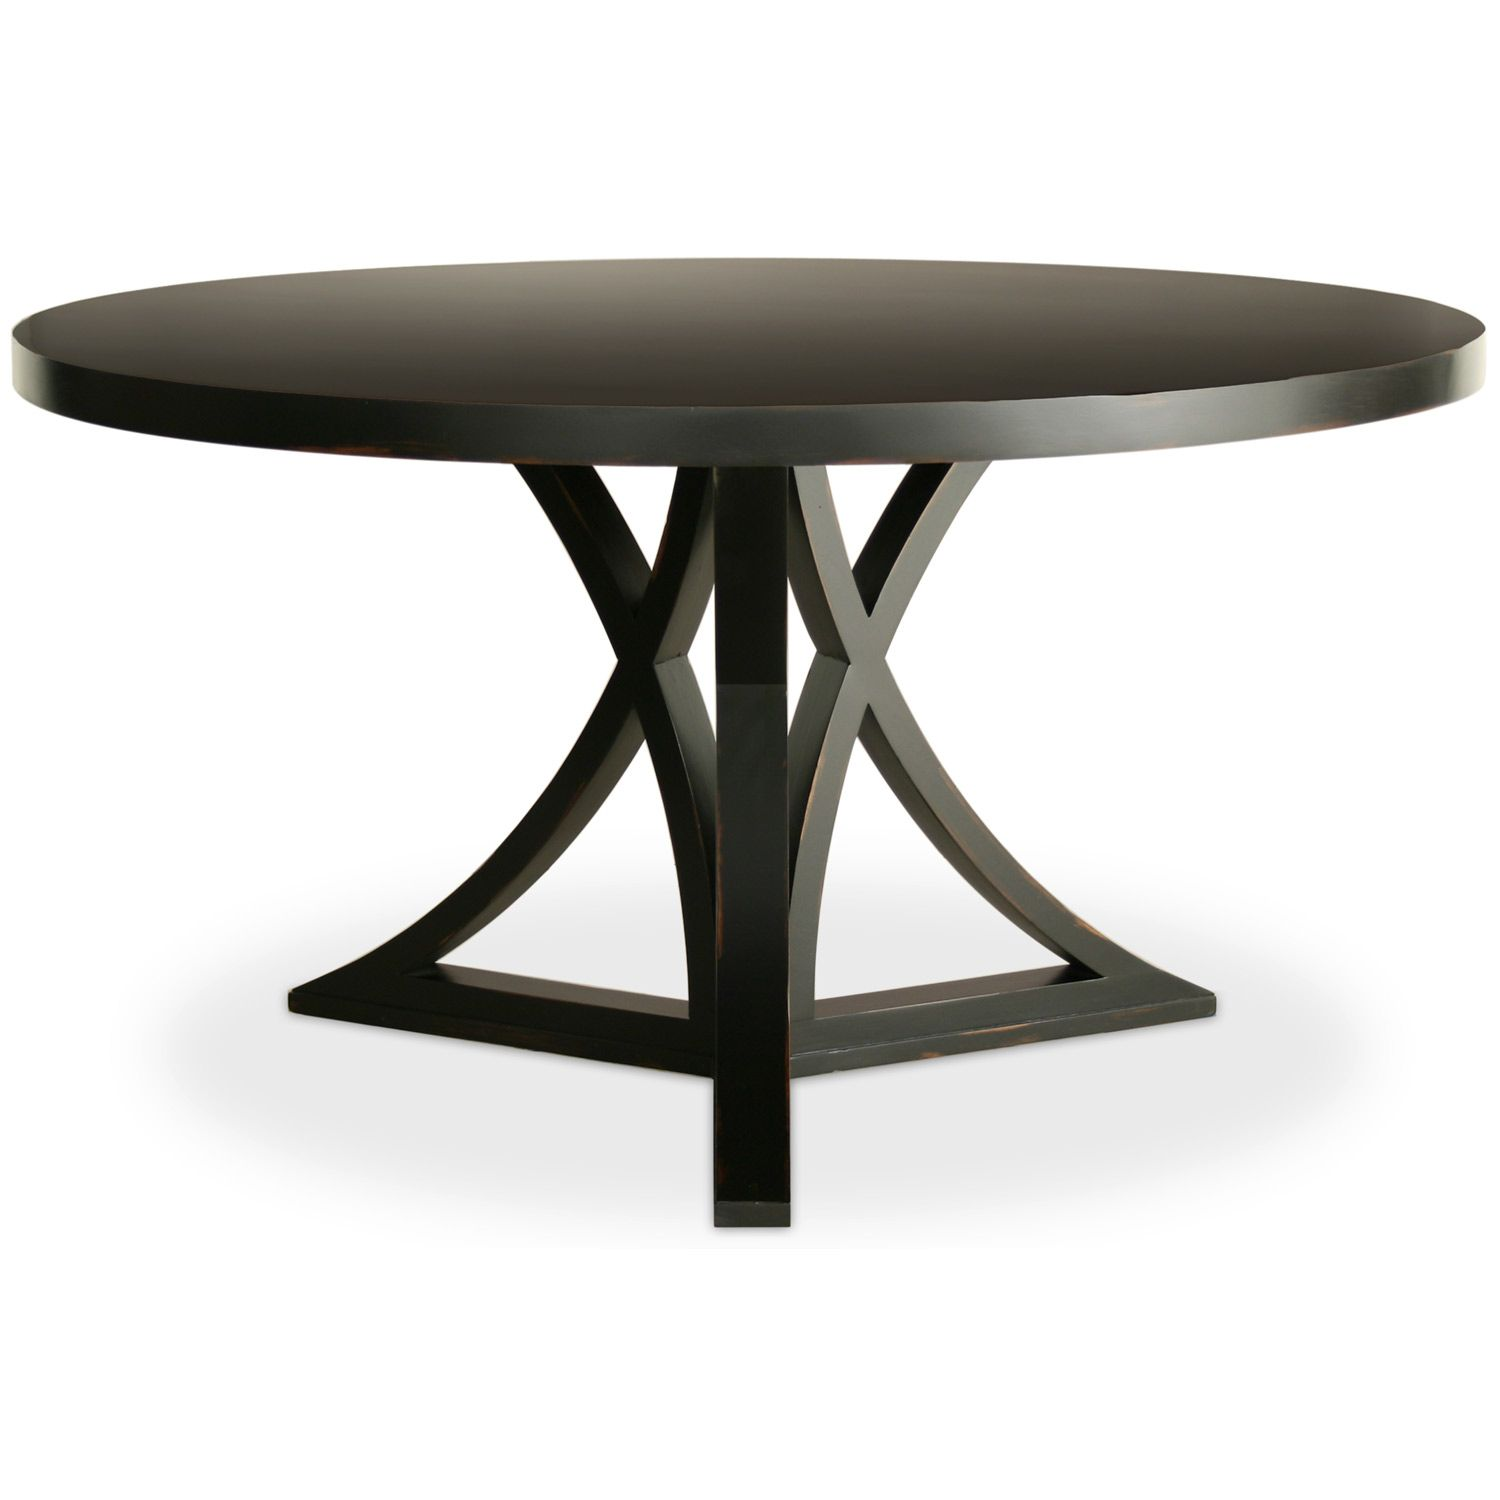 60 round dining set with leaf sophia round dining table round black dining room table design